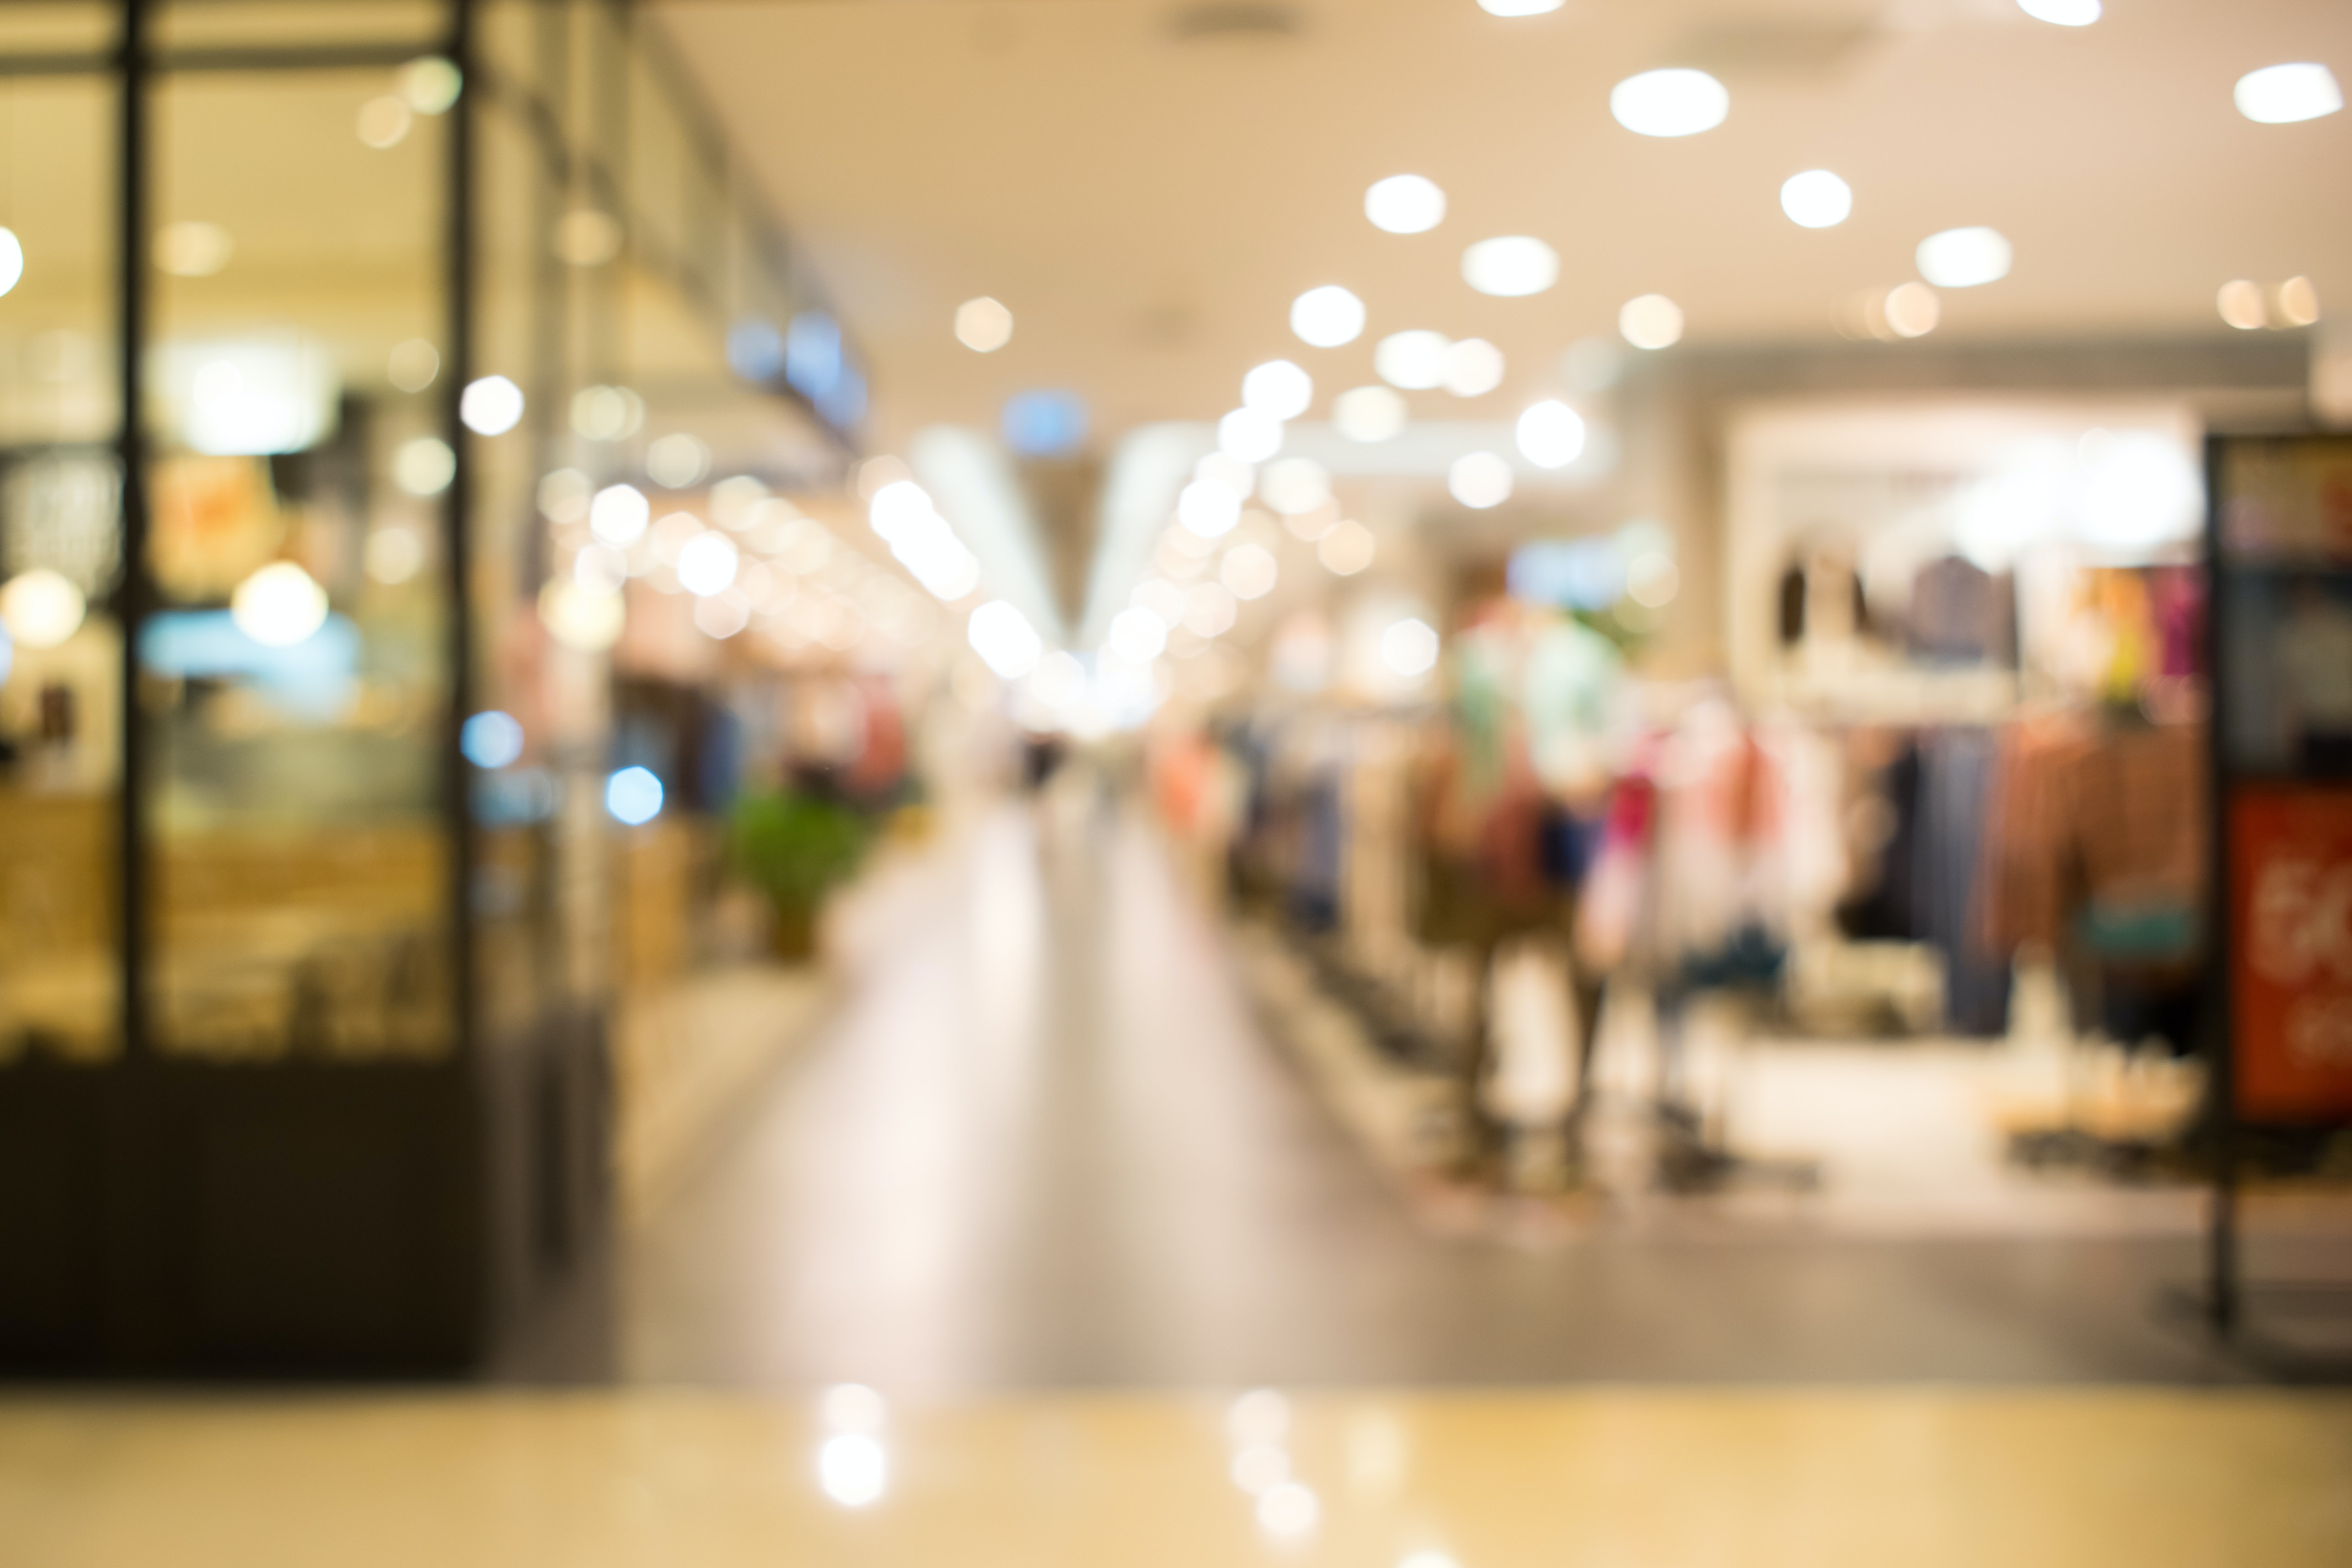 What will the store of the future look like? | Source: Shutterstock